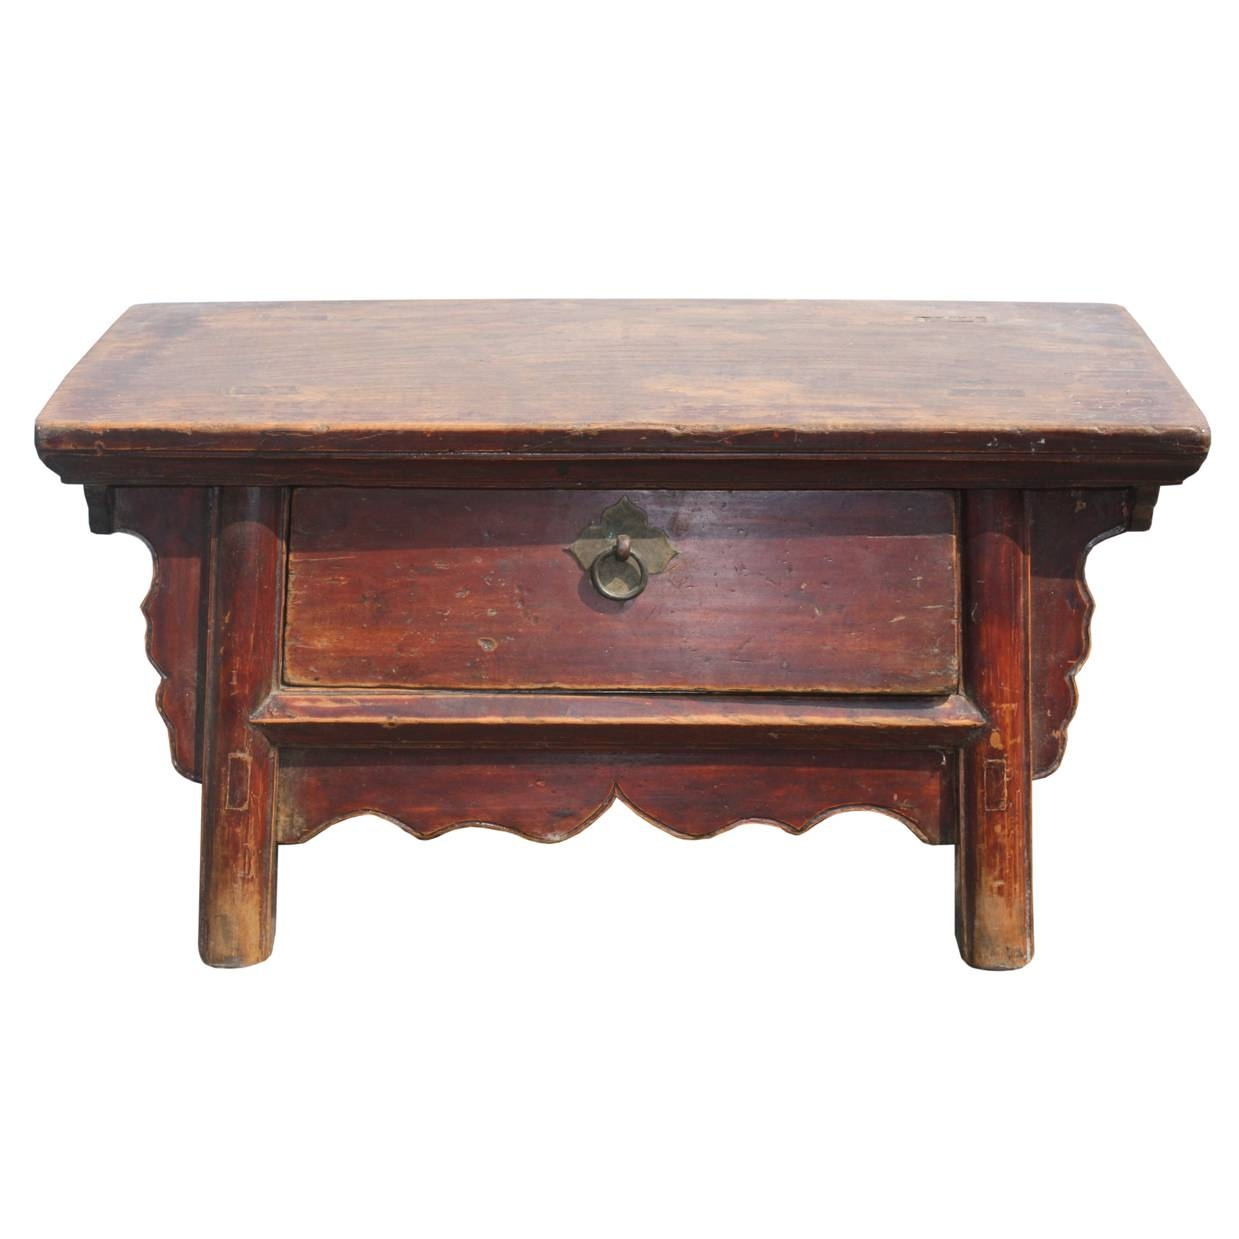 Shen's Gallery | Chinese Antiques | Tea Table & Low Table | Bay Area pertaining to Low Coffee Tables With Drawers (Image 27 of 30)